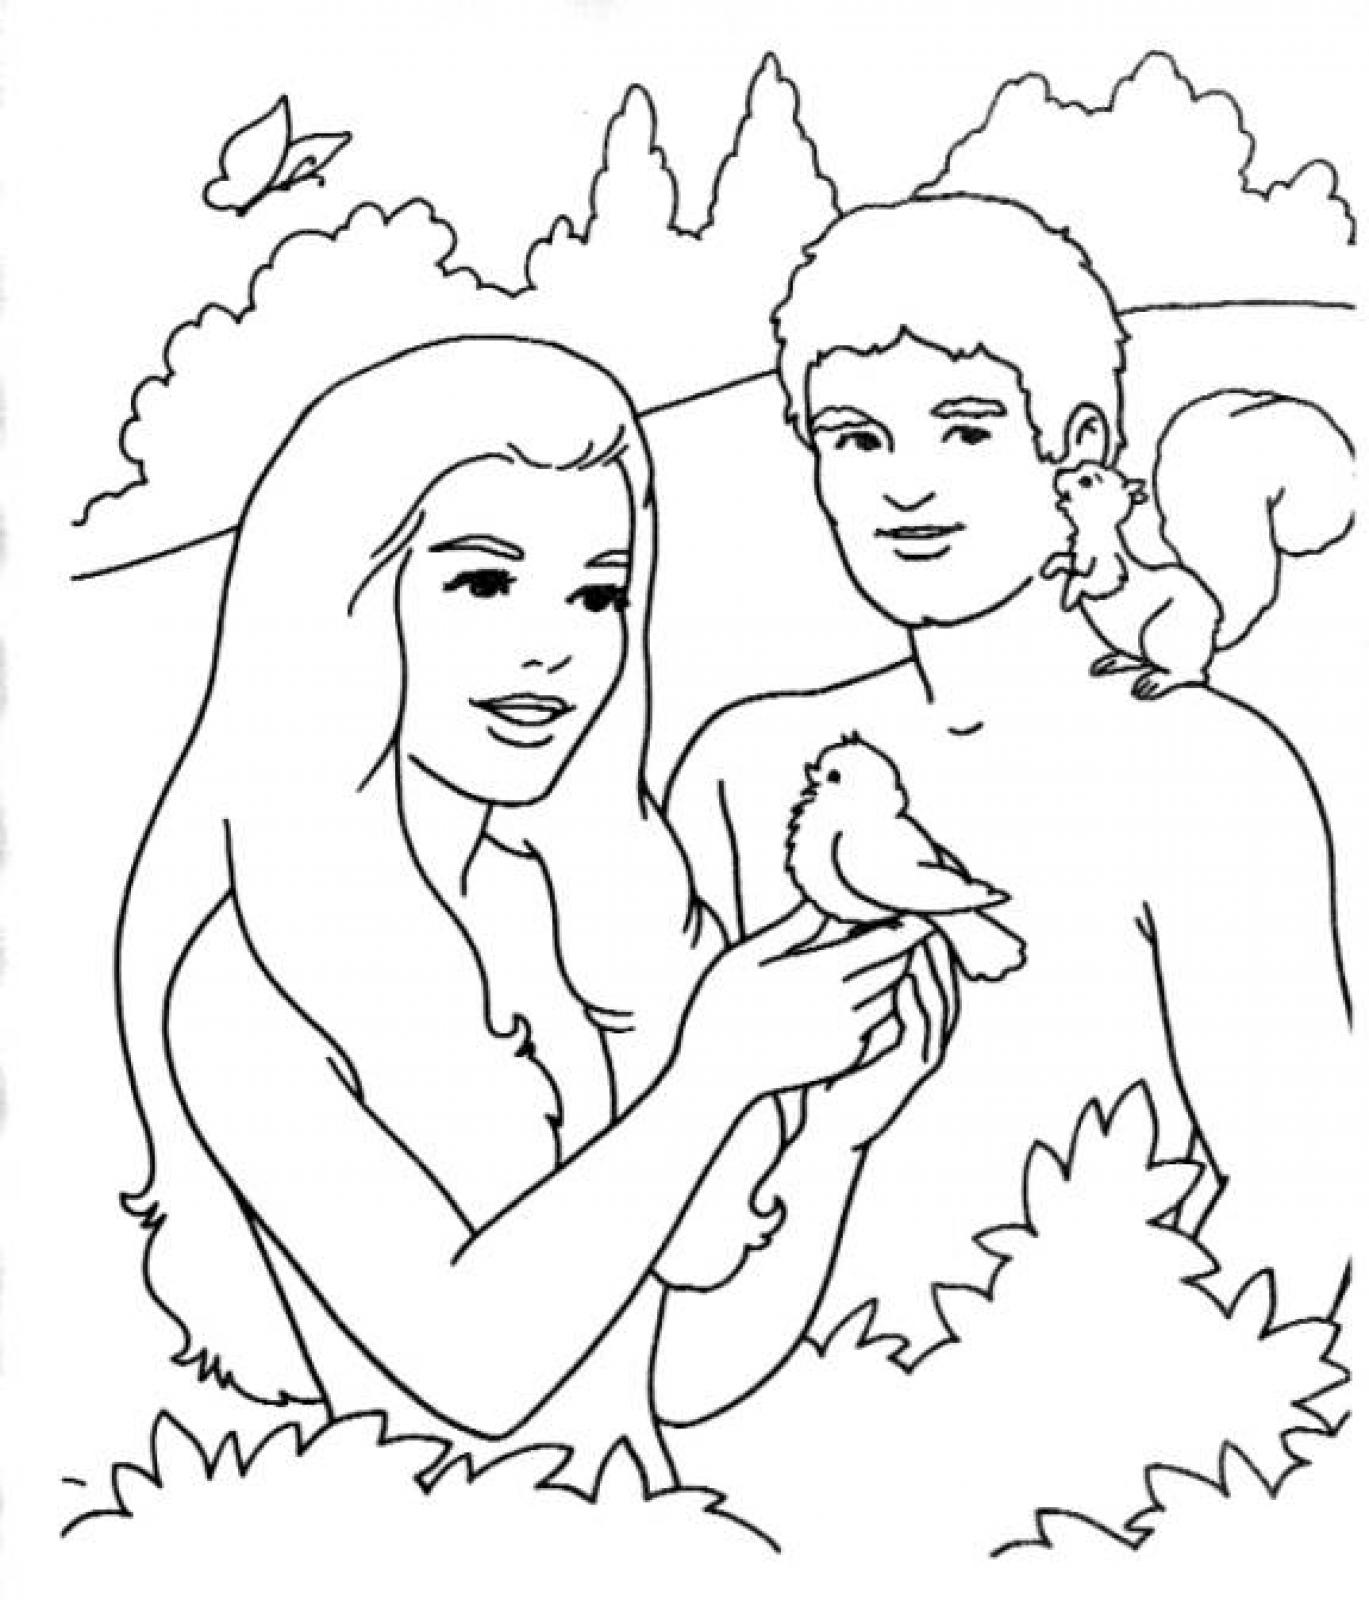 free printable adam and eve coloring for kids best pink crayon heart shade drawing ice coloring pages Adam And Eve Coloring Page